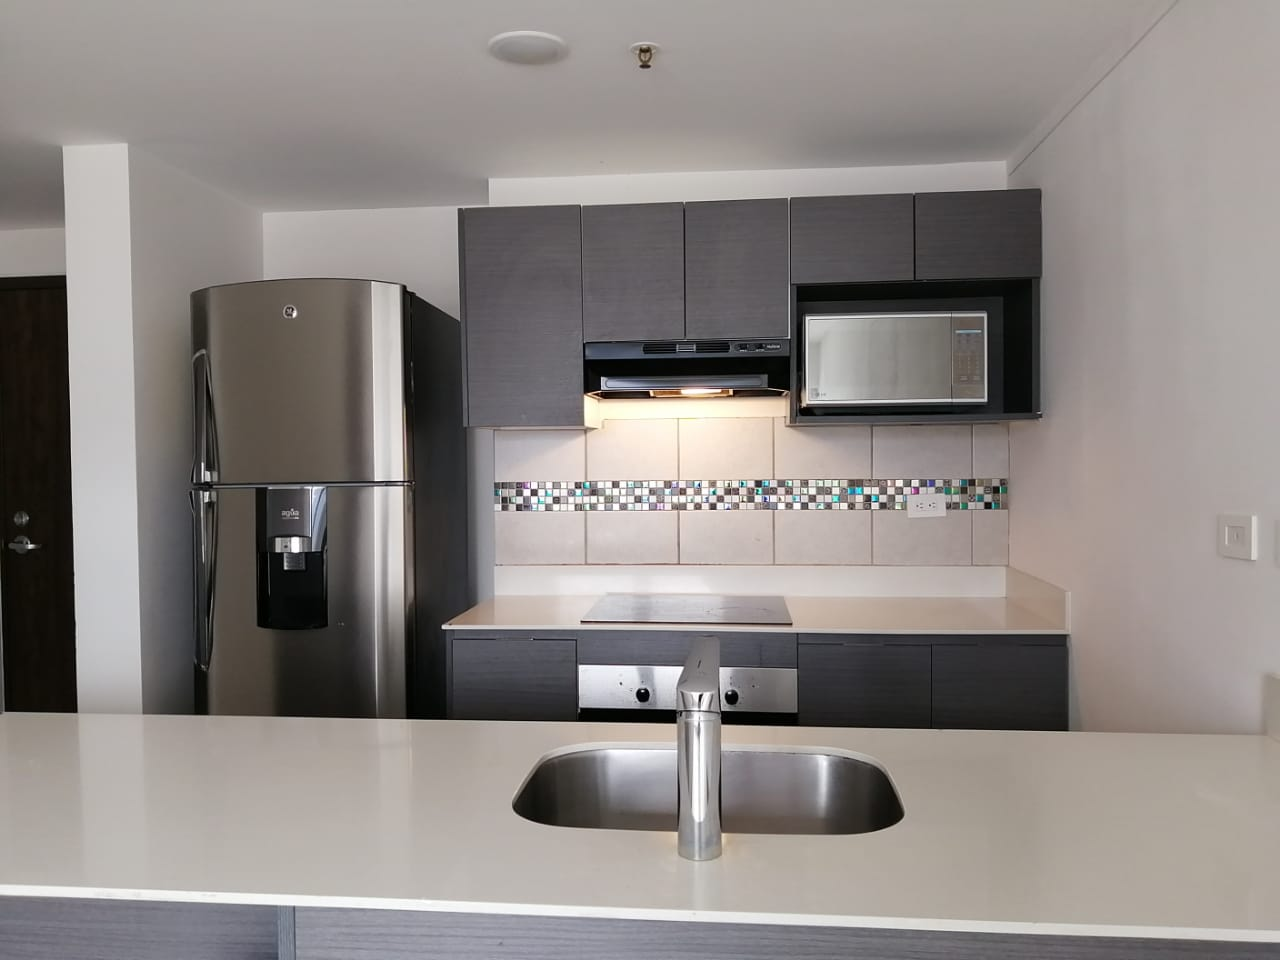 2463 For Rent 2 bedroom apartment semi-furnished